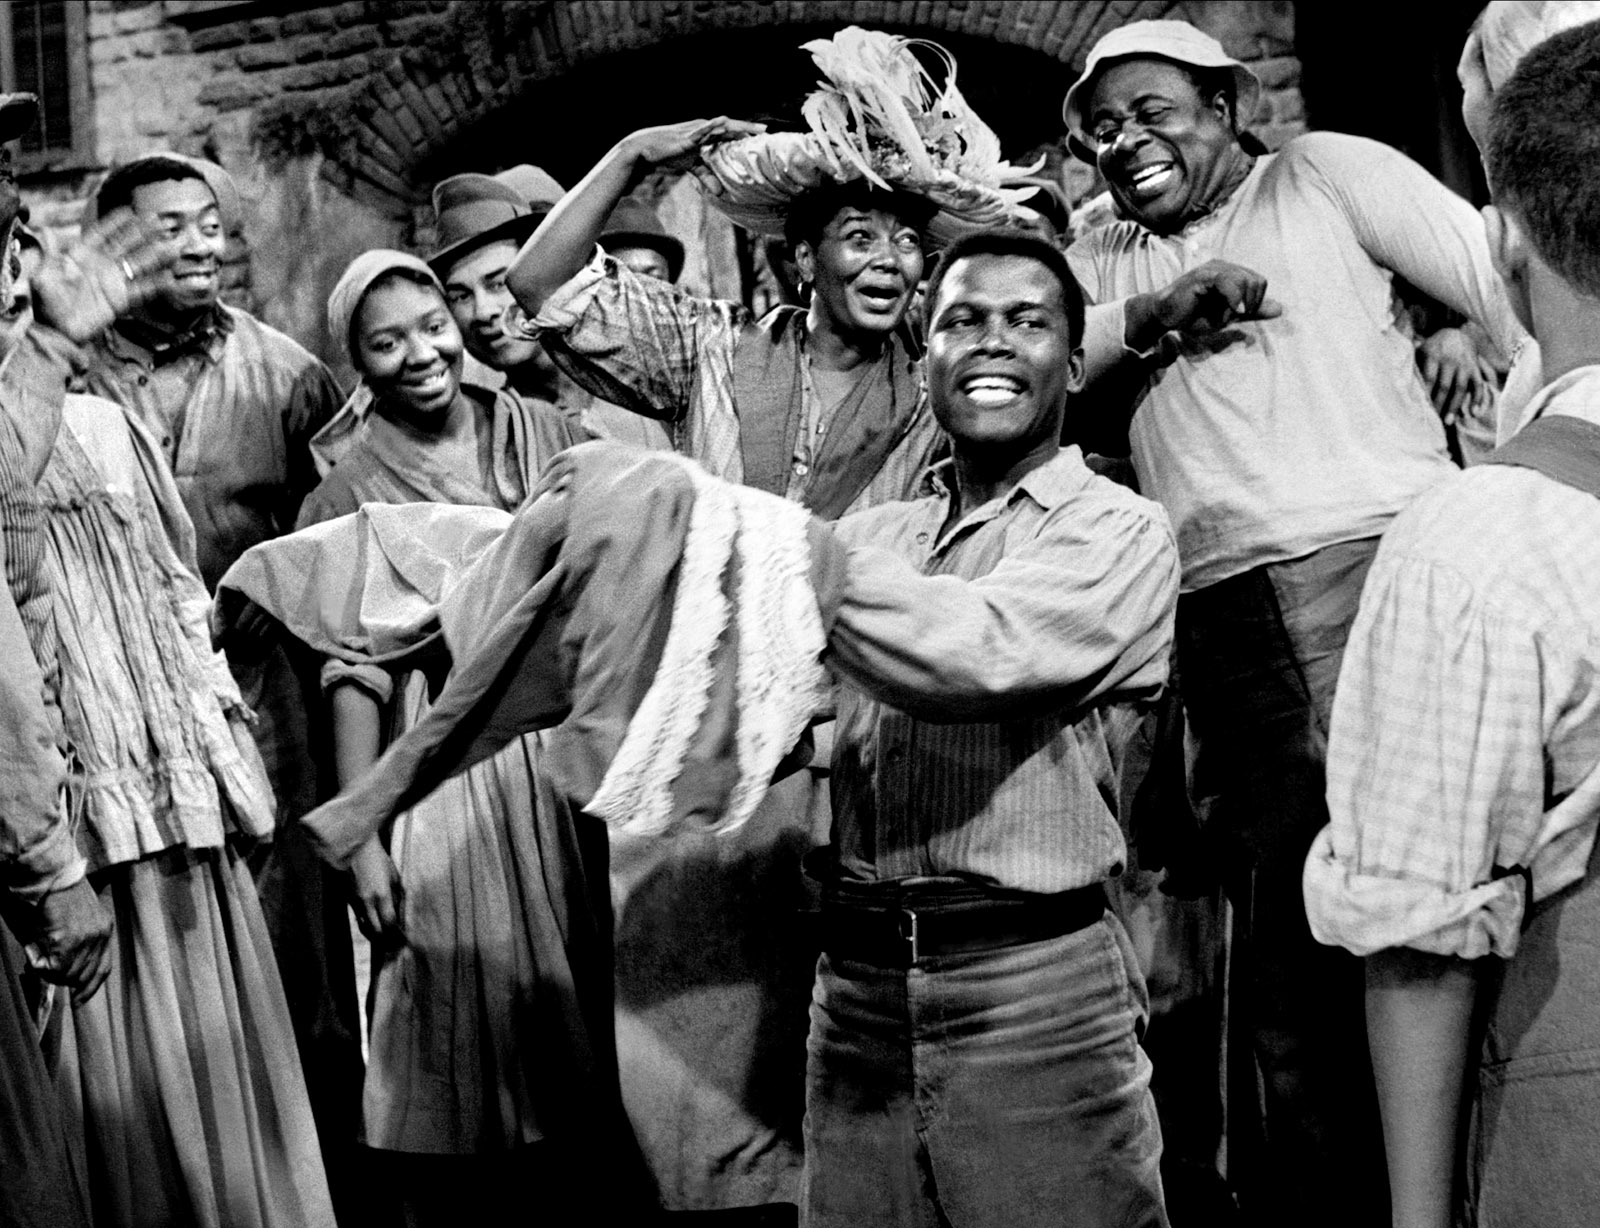 Sidney Poitier as Porgy in Otto Preminger's film Porgy and Bess, 1959